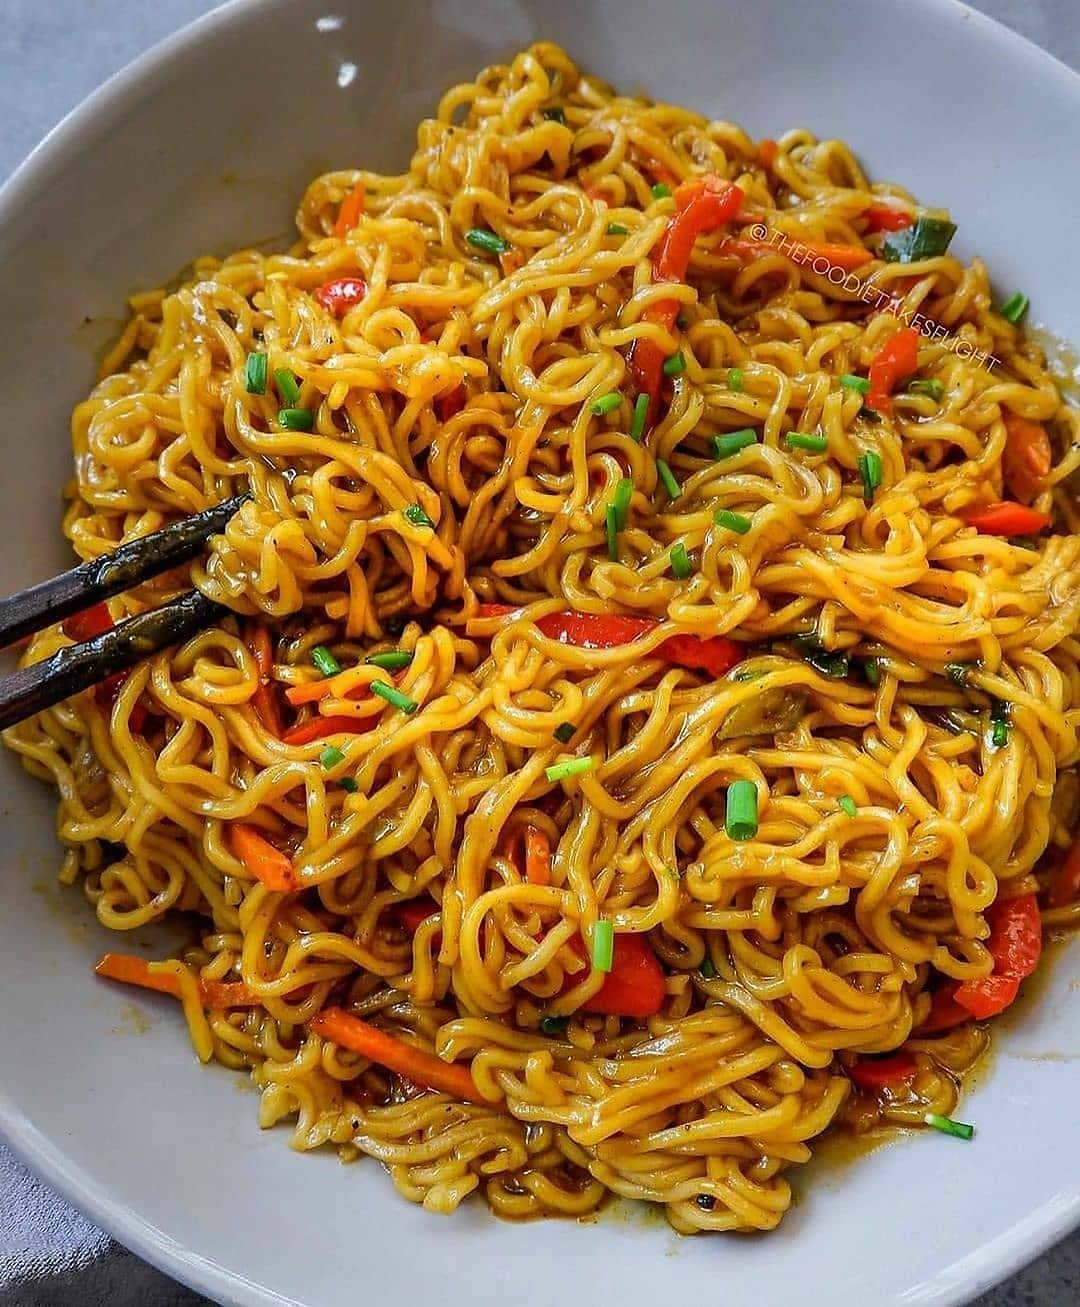 curry & pepper noodles display image  02db5d11